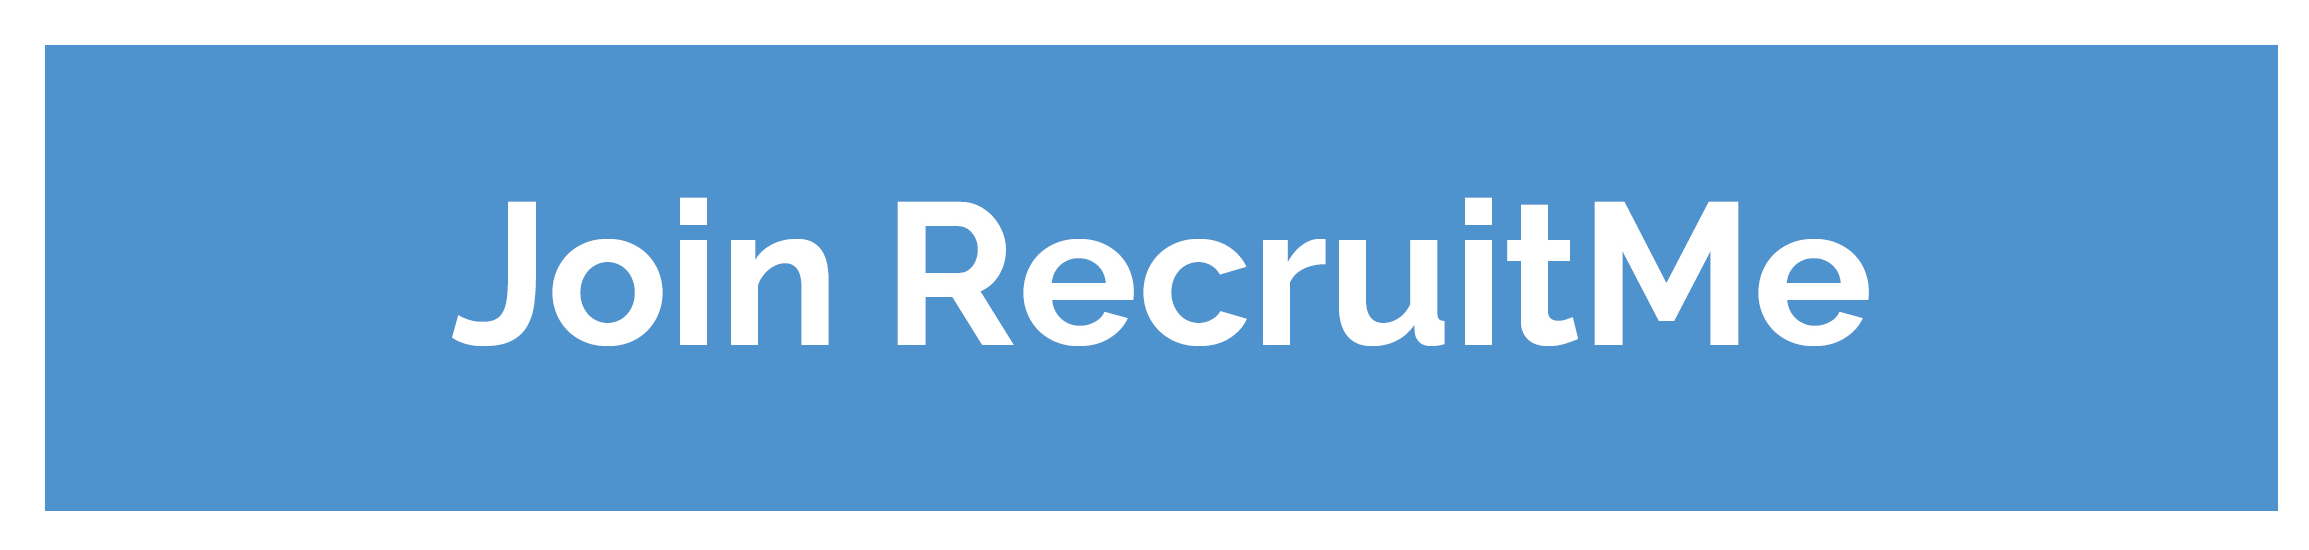 Join Recruitme